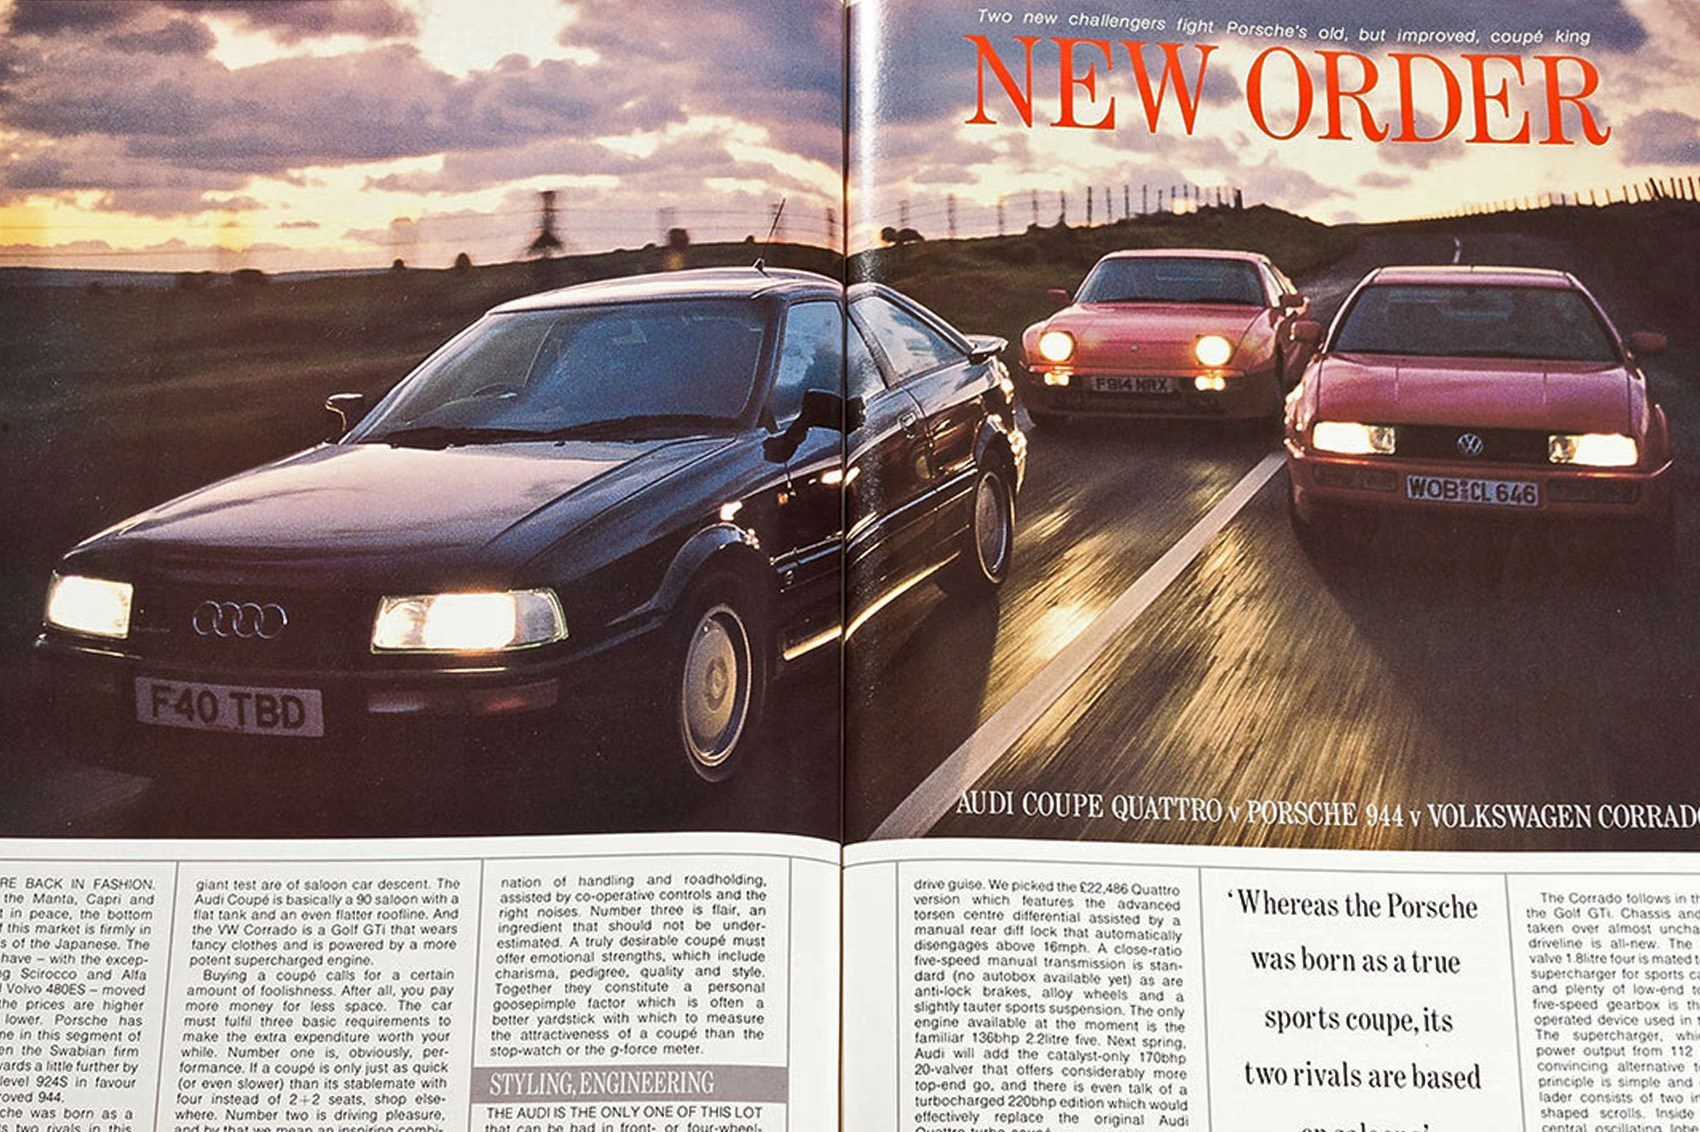 New Order Audi Coupe Quattro Vs Porsche 944 Vs Vw Corrado G60 Car Archive 1989 Car Magazine